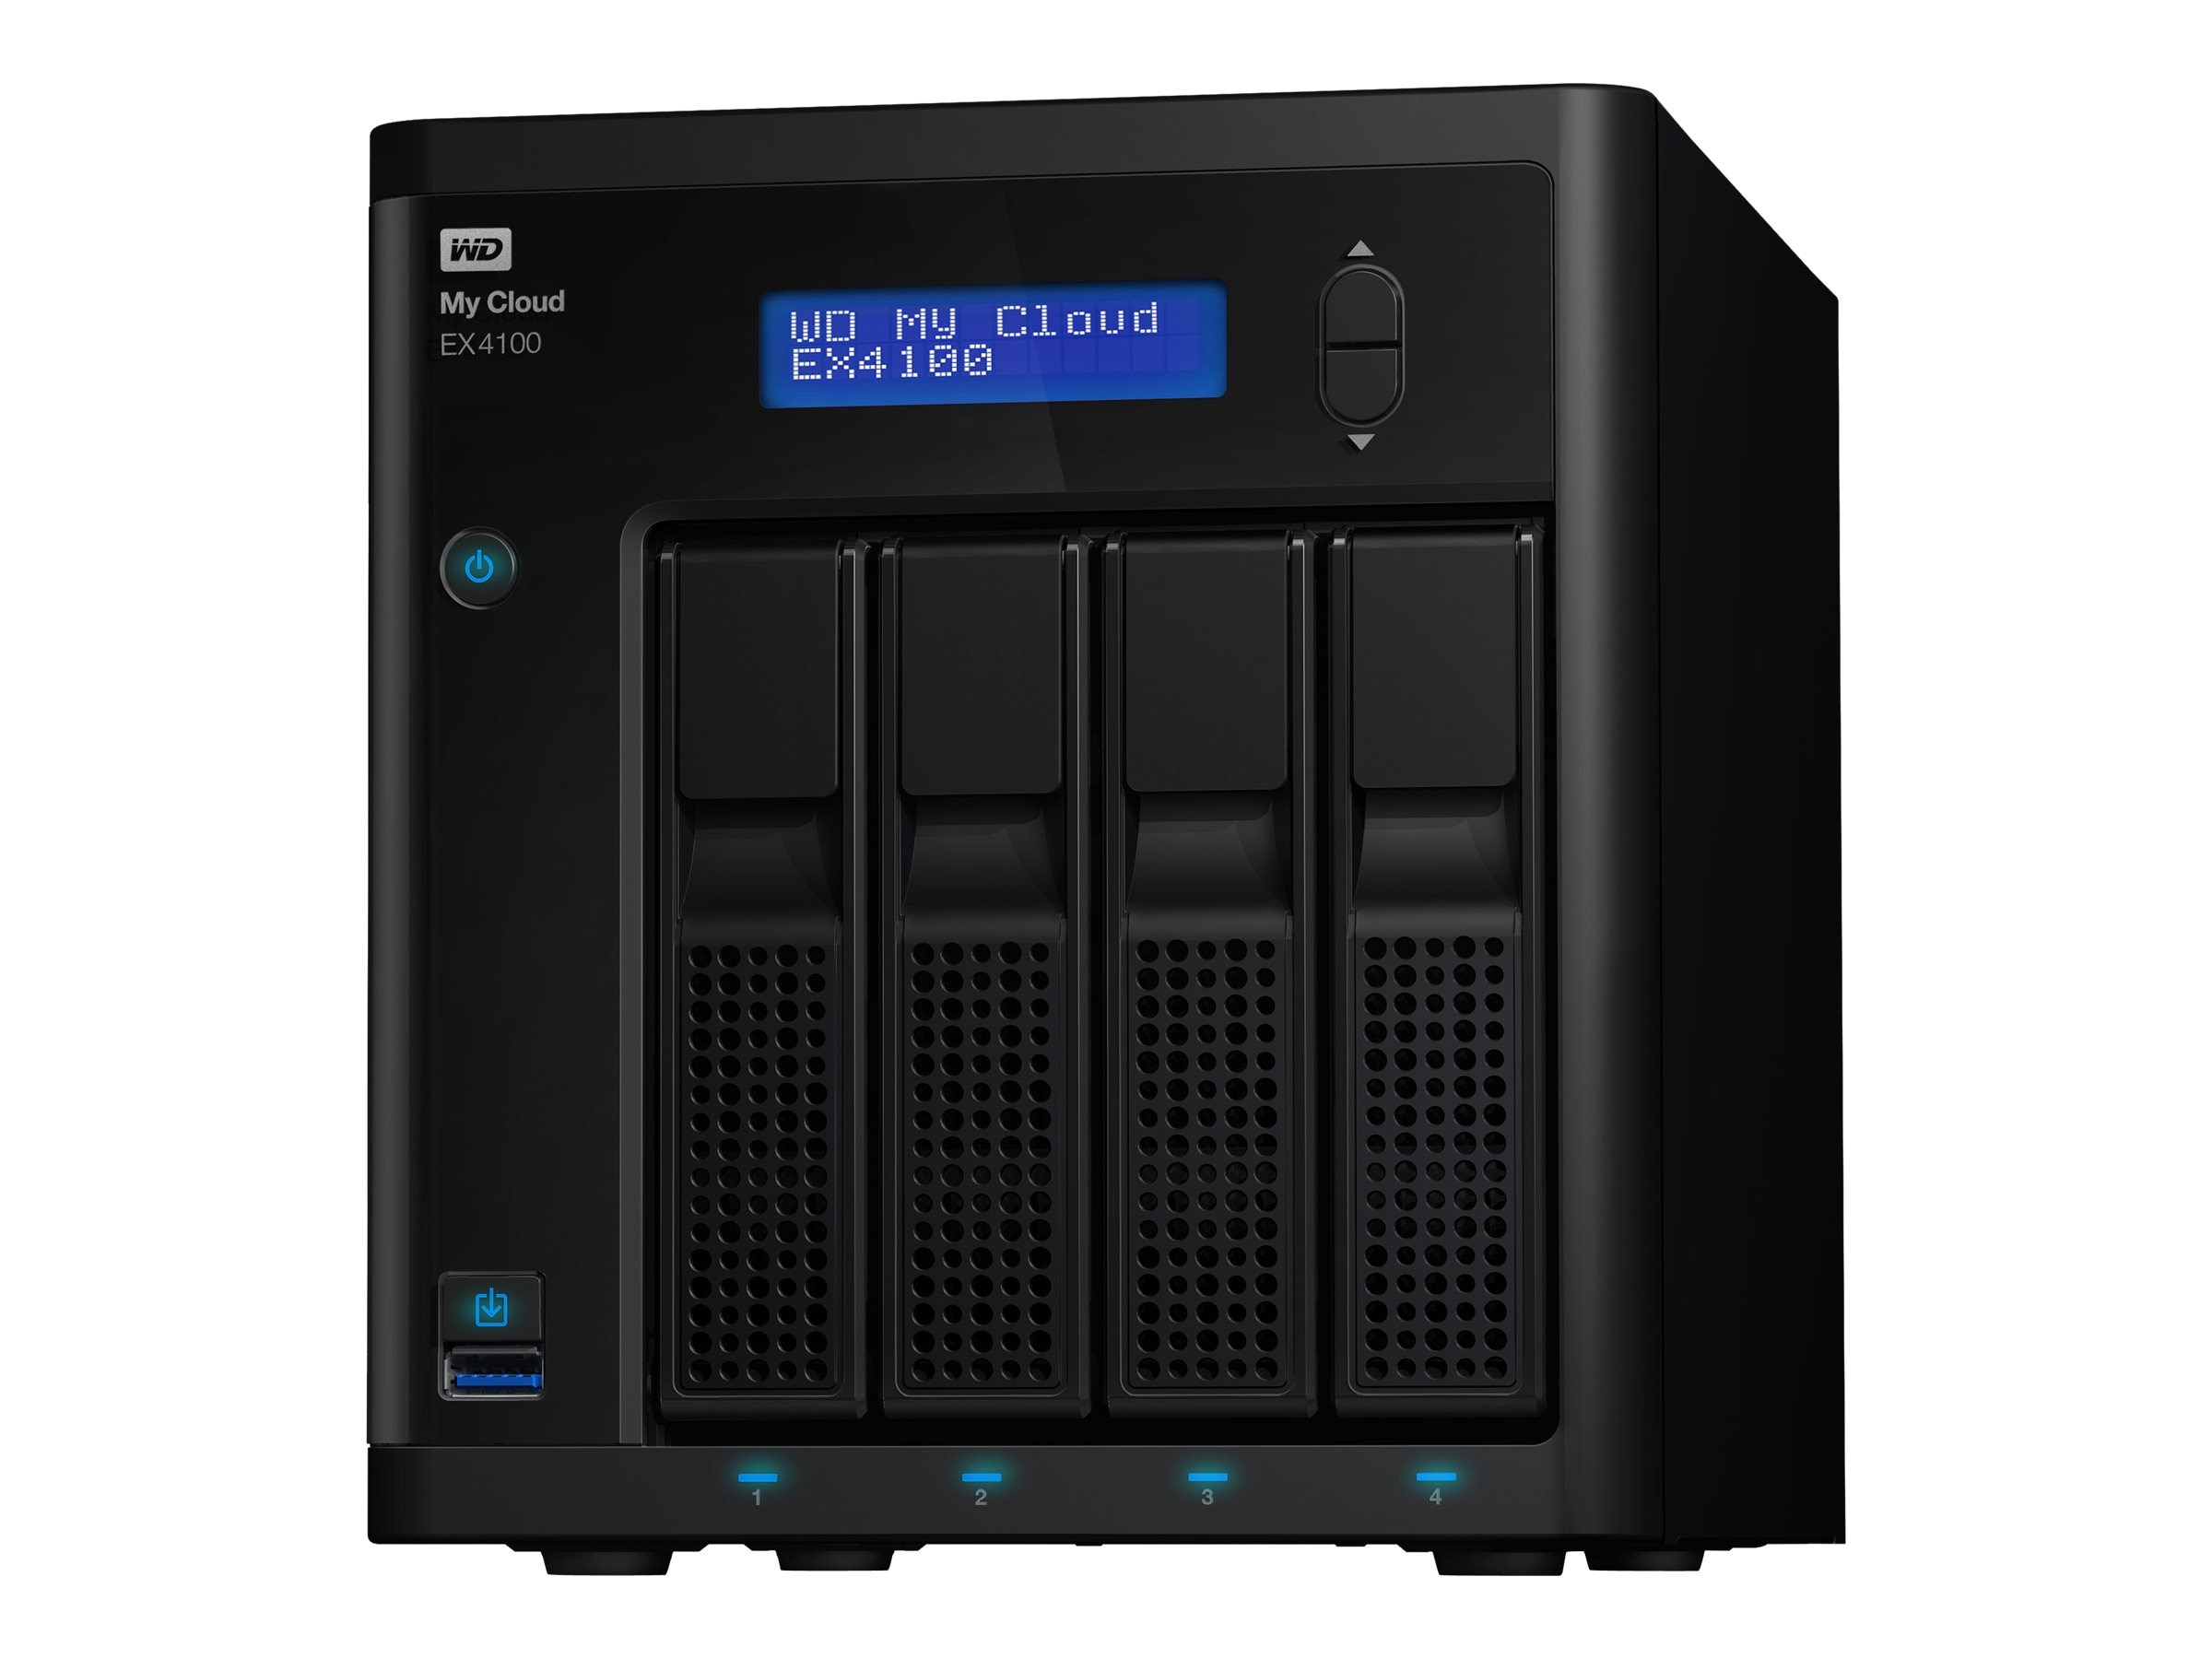 WD 16TB My Cloud EX4100 Network Attached Storage